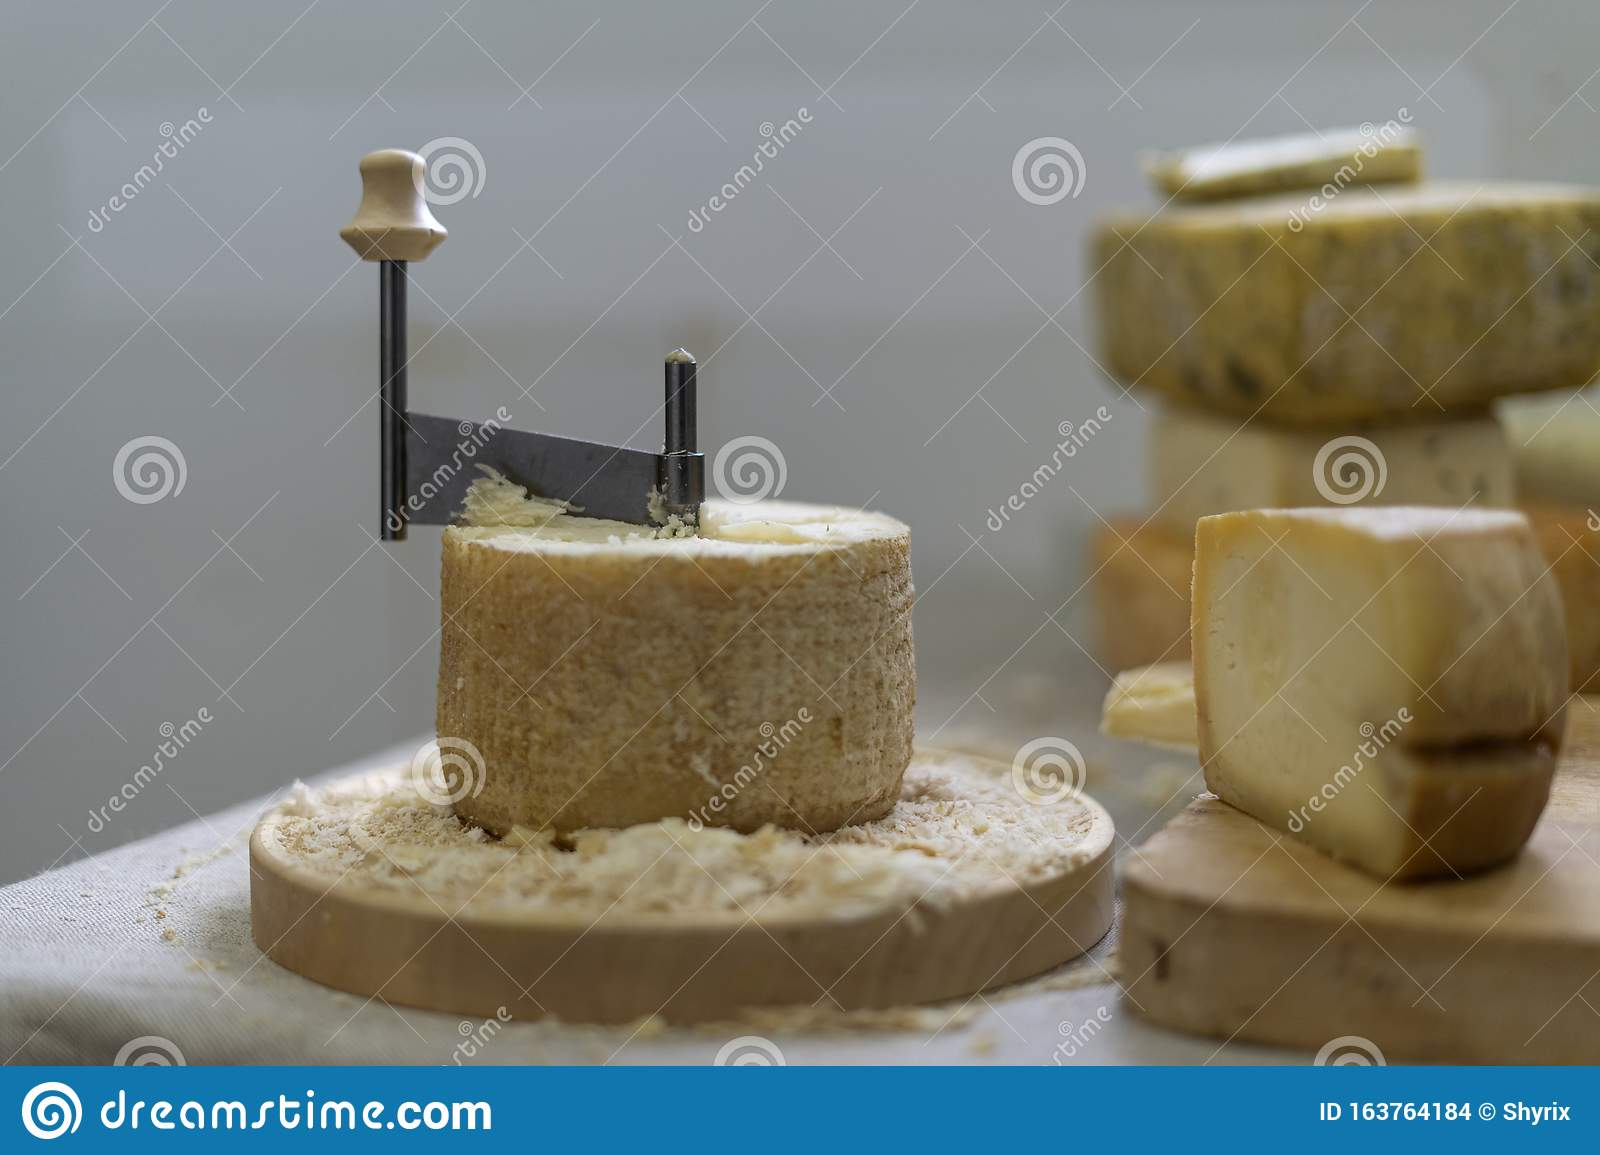 Groovy Scraping Device Of Swiss Cheese Tete De Moine Stock Photo Image Funny Birthday Cards Online Inifodamsfinfo